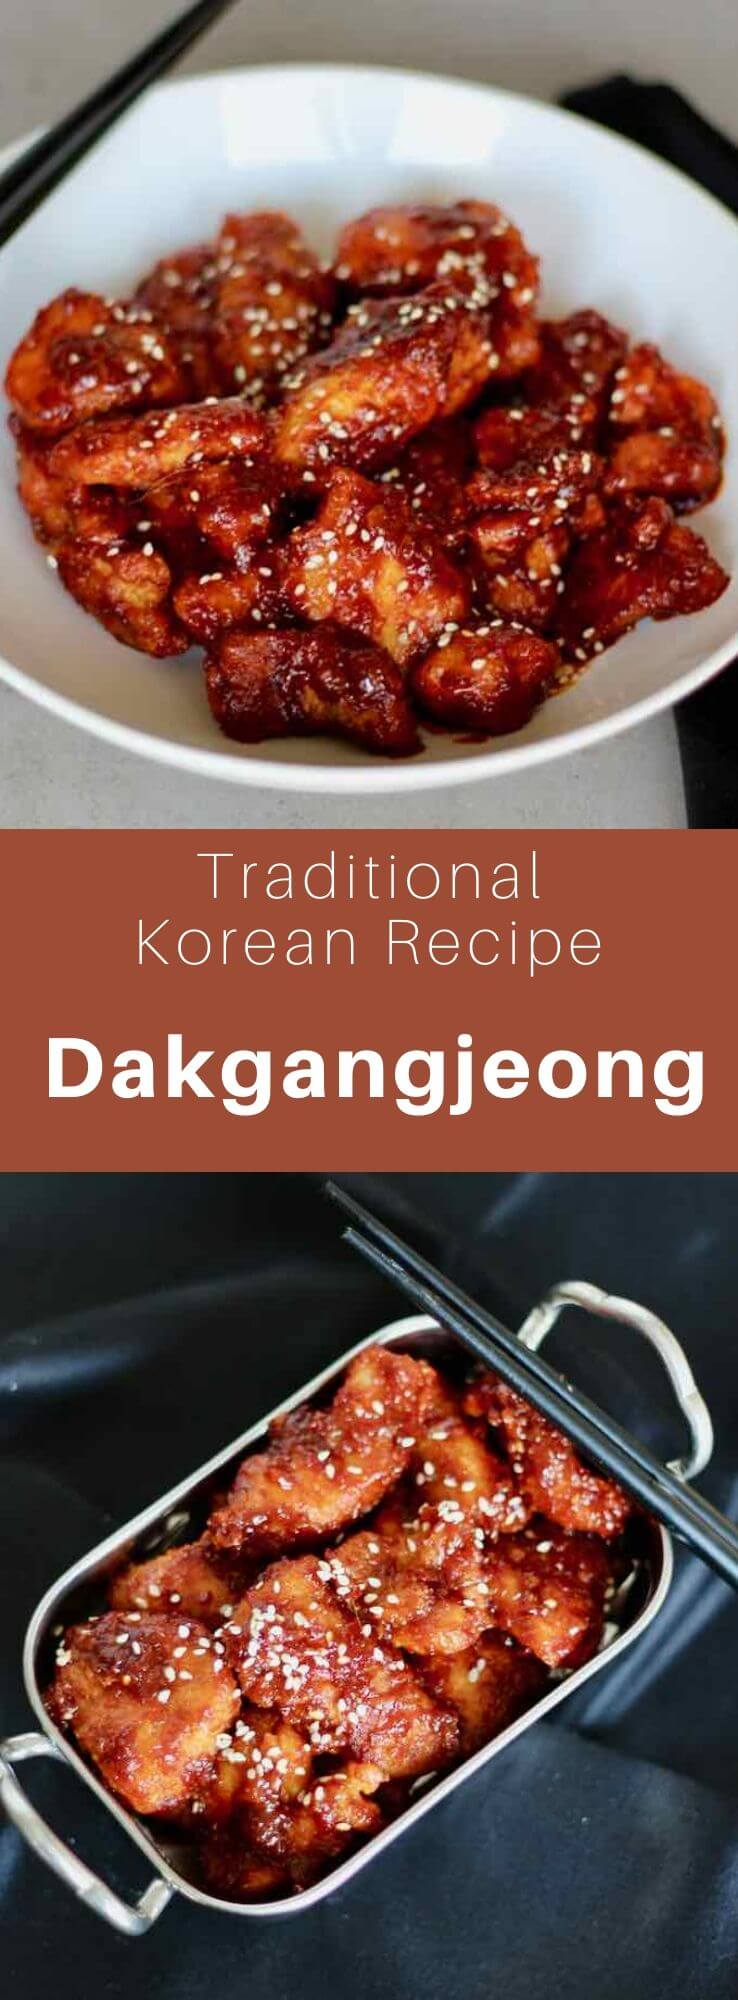 Dakgangjeong is a Korean dish of chicken that is fried twice and then sautéed in a sweet, sour, spicy, thick, and slightly sticky sauce. #KoreanFood #KoreanRecipe #KoreanCuisine #WorldCuisine #196flavors